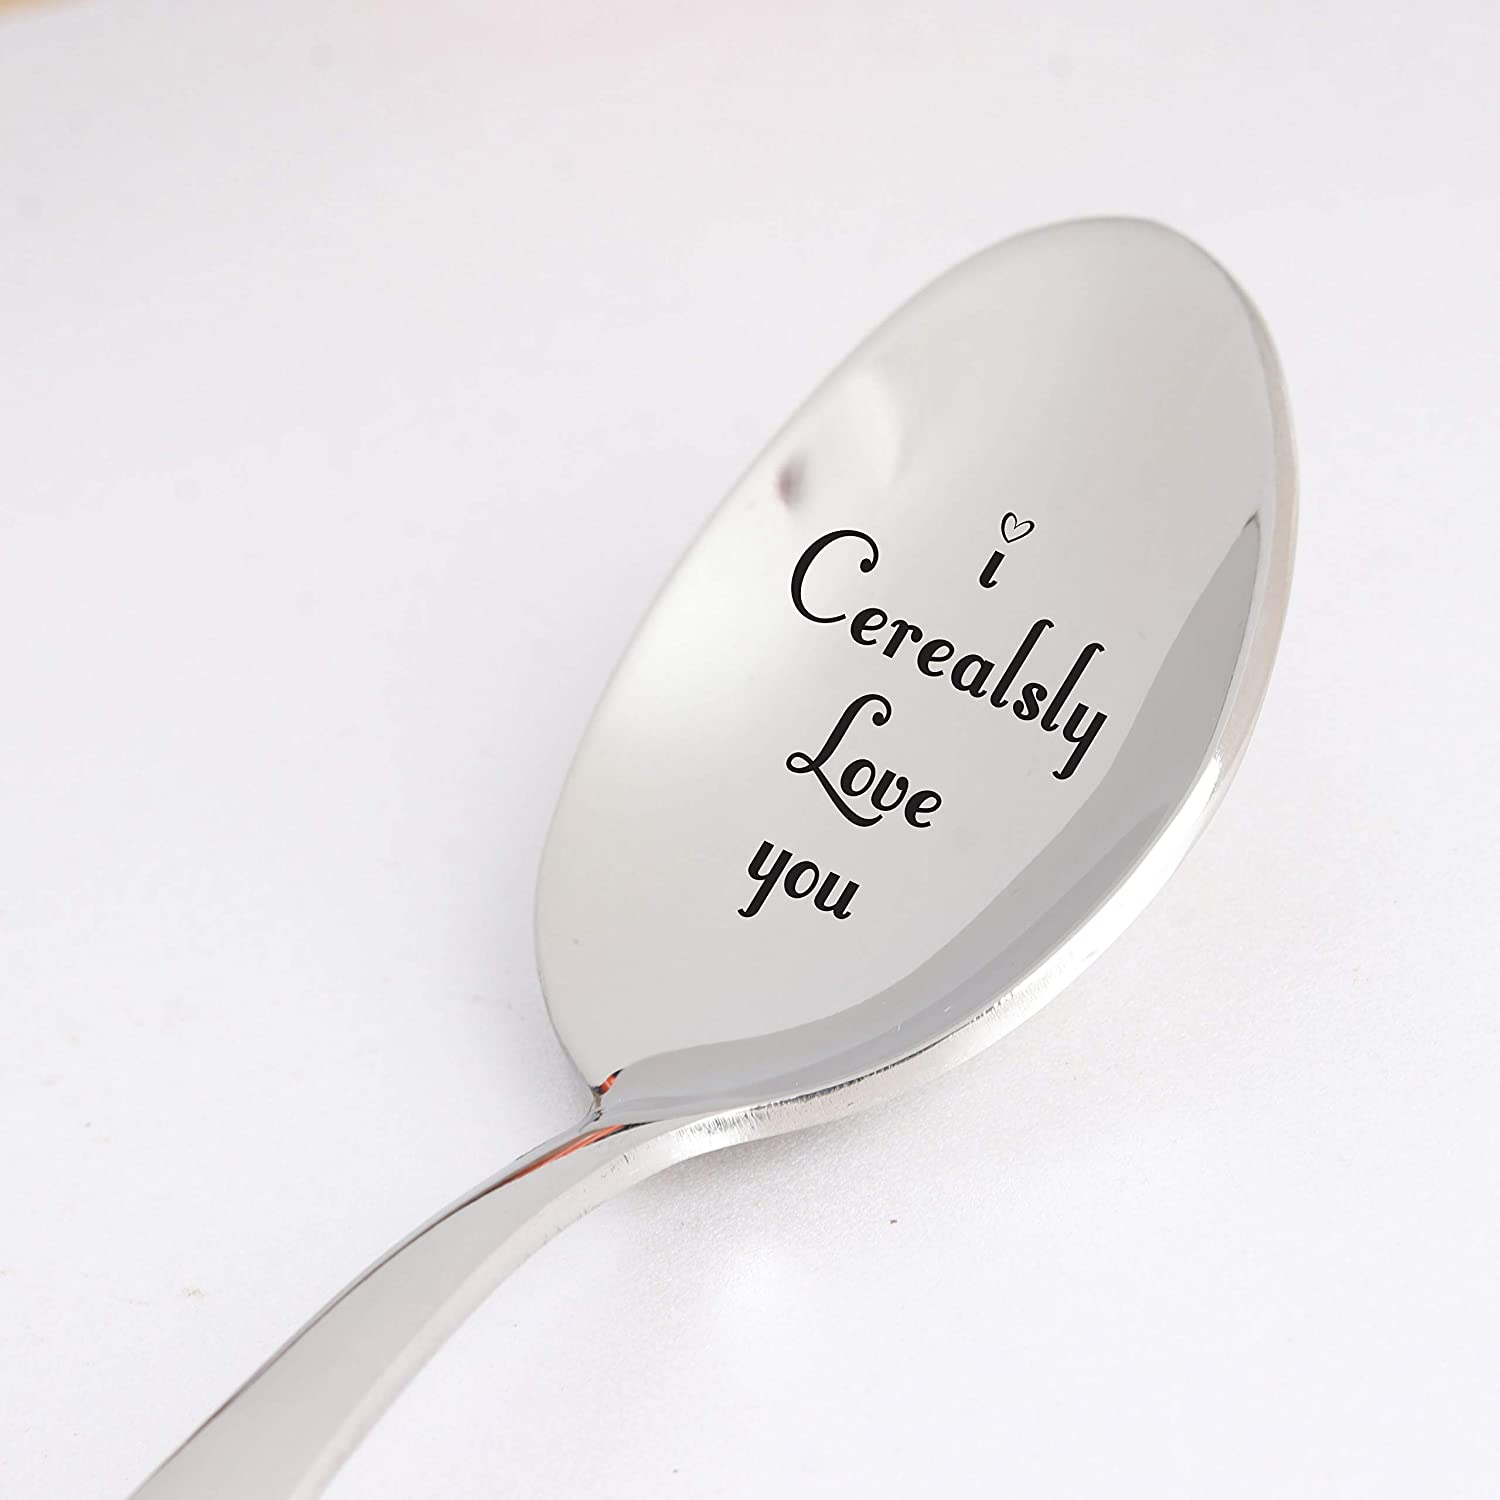 I Cerealsly Love You Spoon Gift for Sister Holiday Gift Idea for Men Women Funny Gifts for Husband Christmas Gift for Cereal Lovers 7 Inch Stainless Steel Spoon Gift for Dad Grandparent Mom